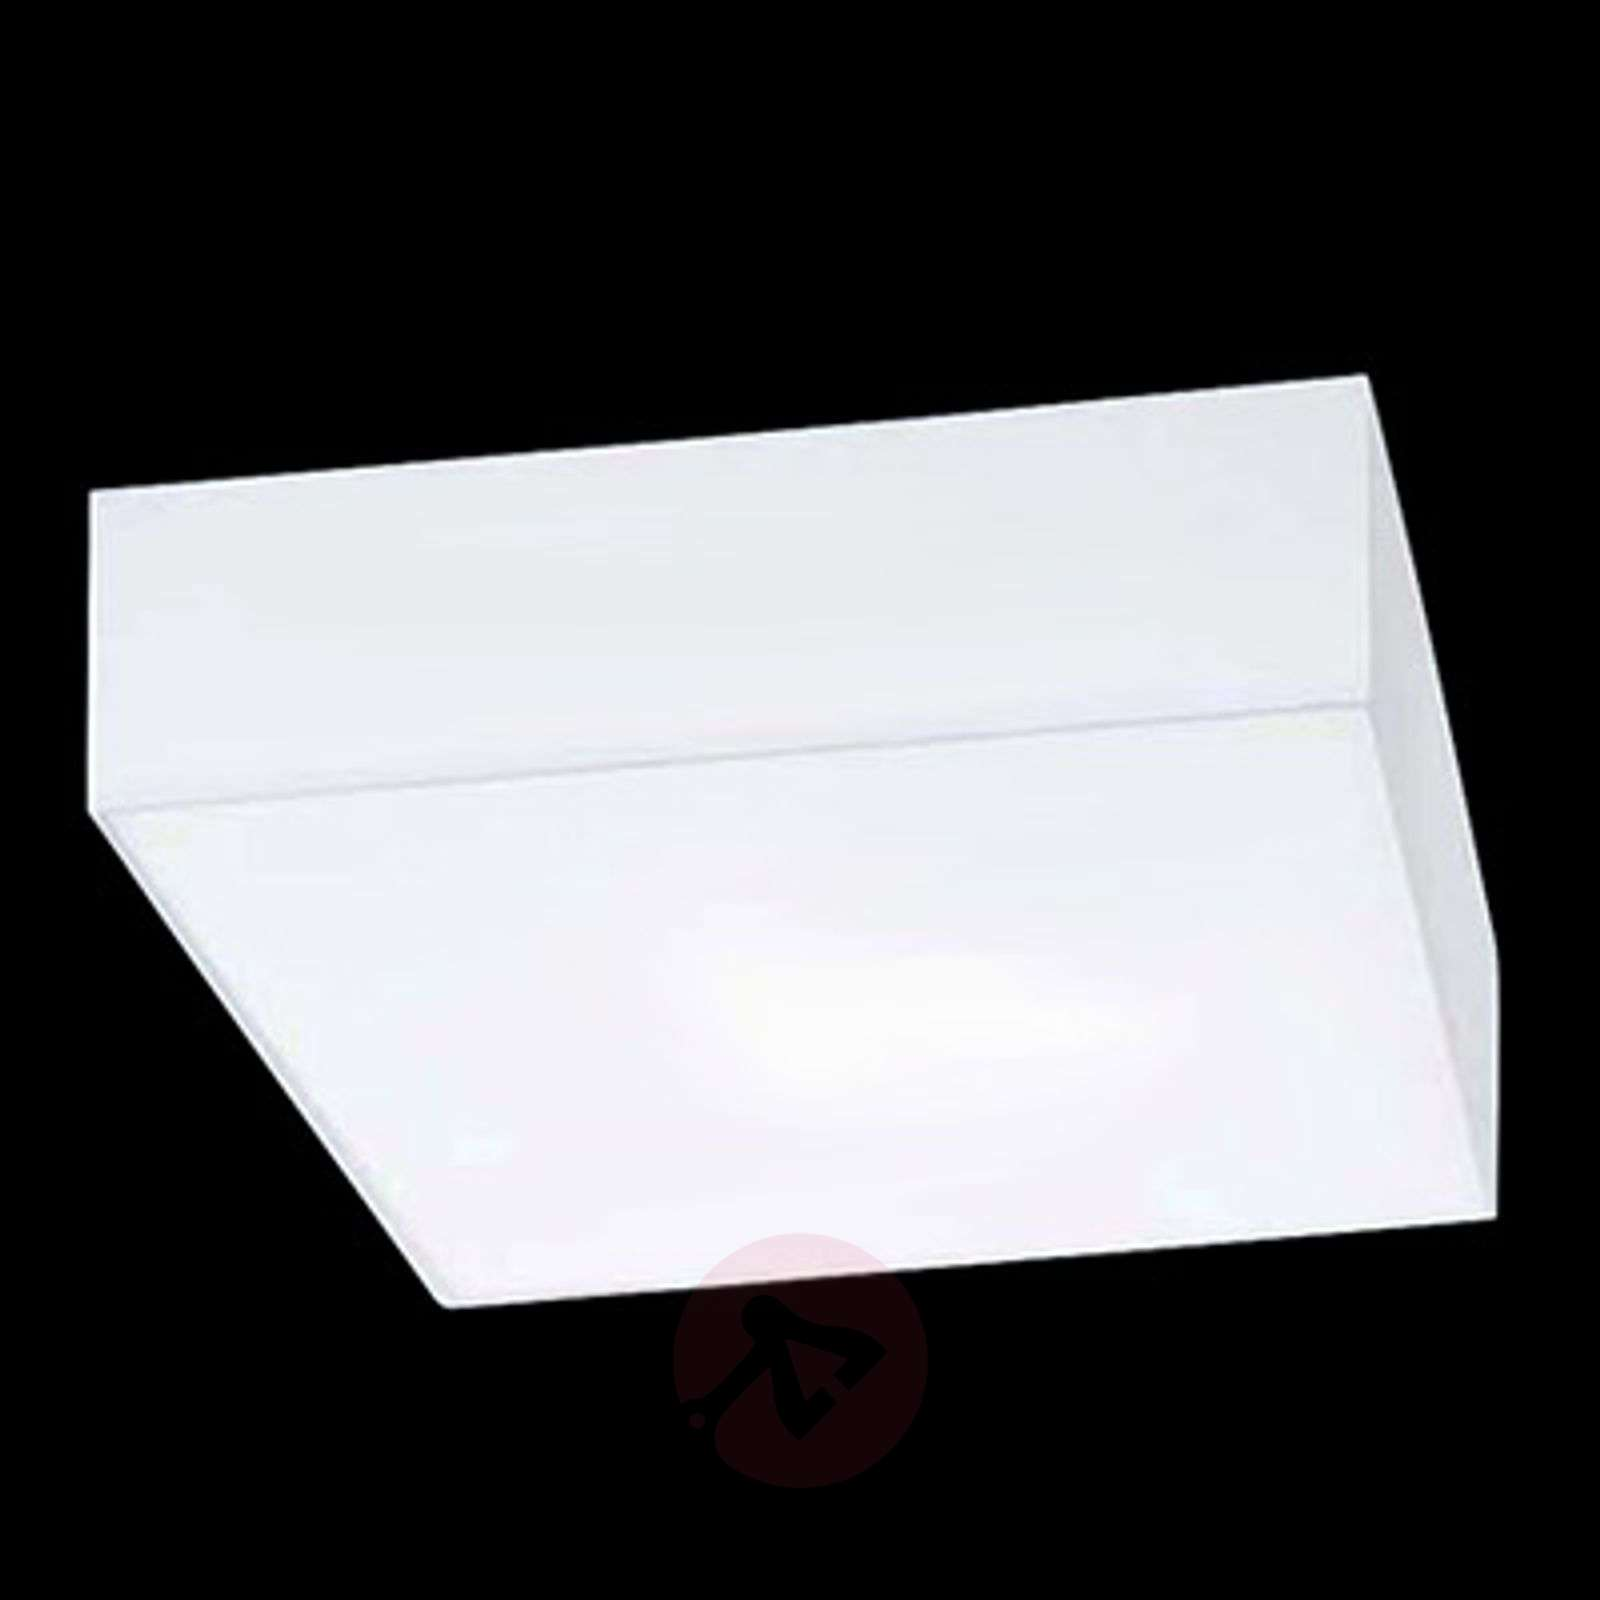 Square ceiling light cube hela in white lights square ceiling light cube hela in white 4536191 01 aloadofball Choice Image